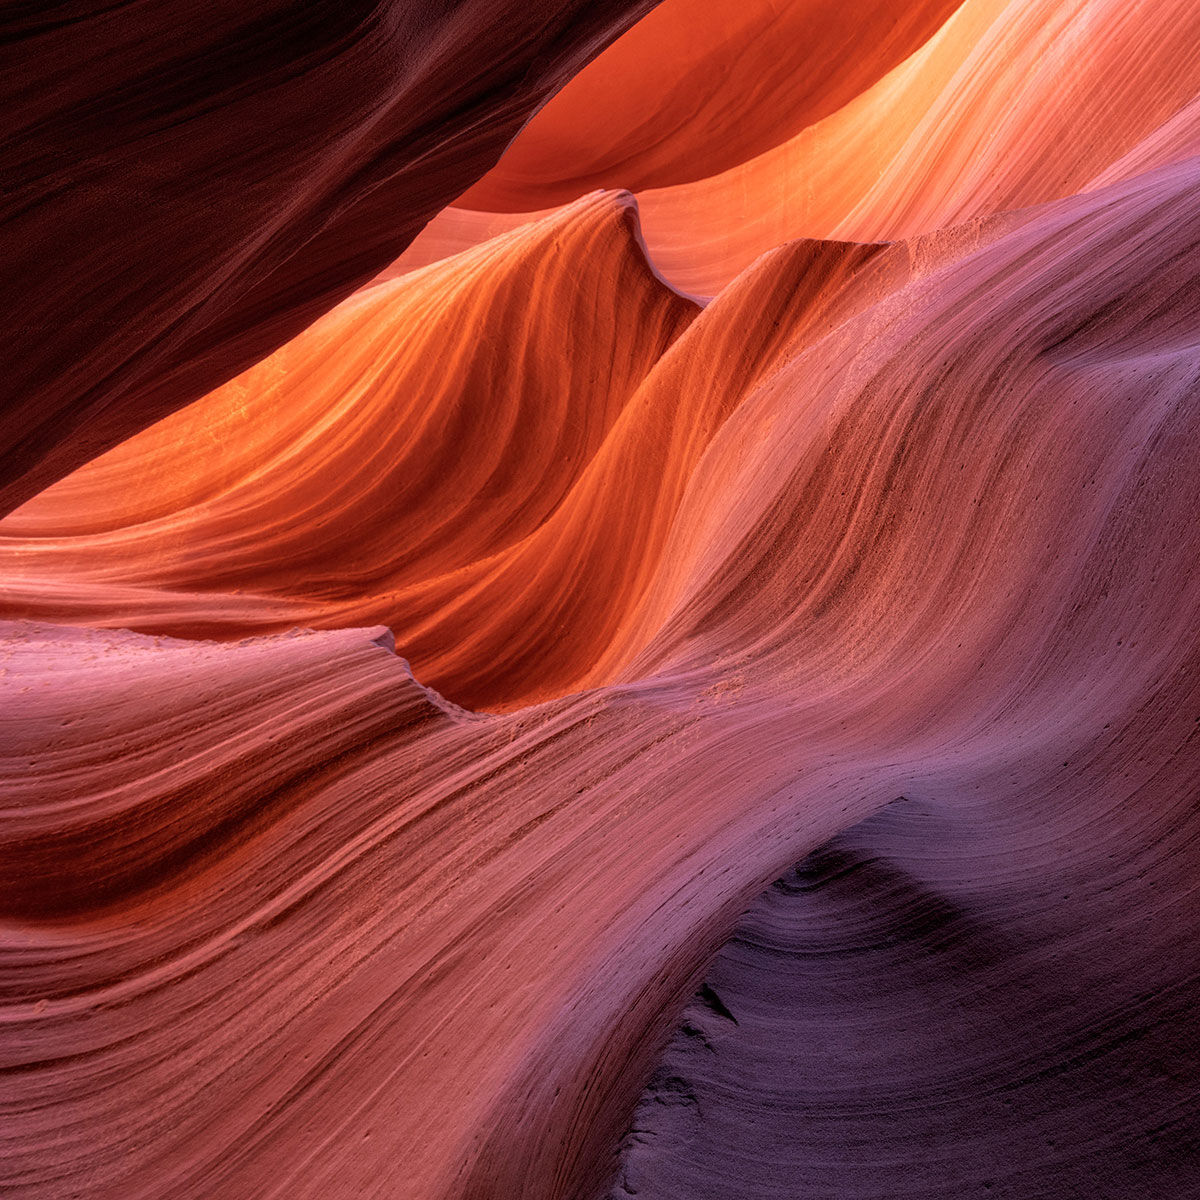 A photograph of abstract patterns found inside Antelope Canyon titled Deamweaver.